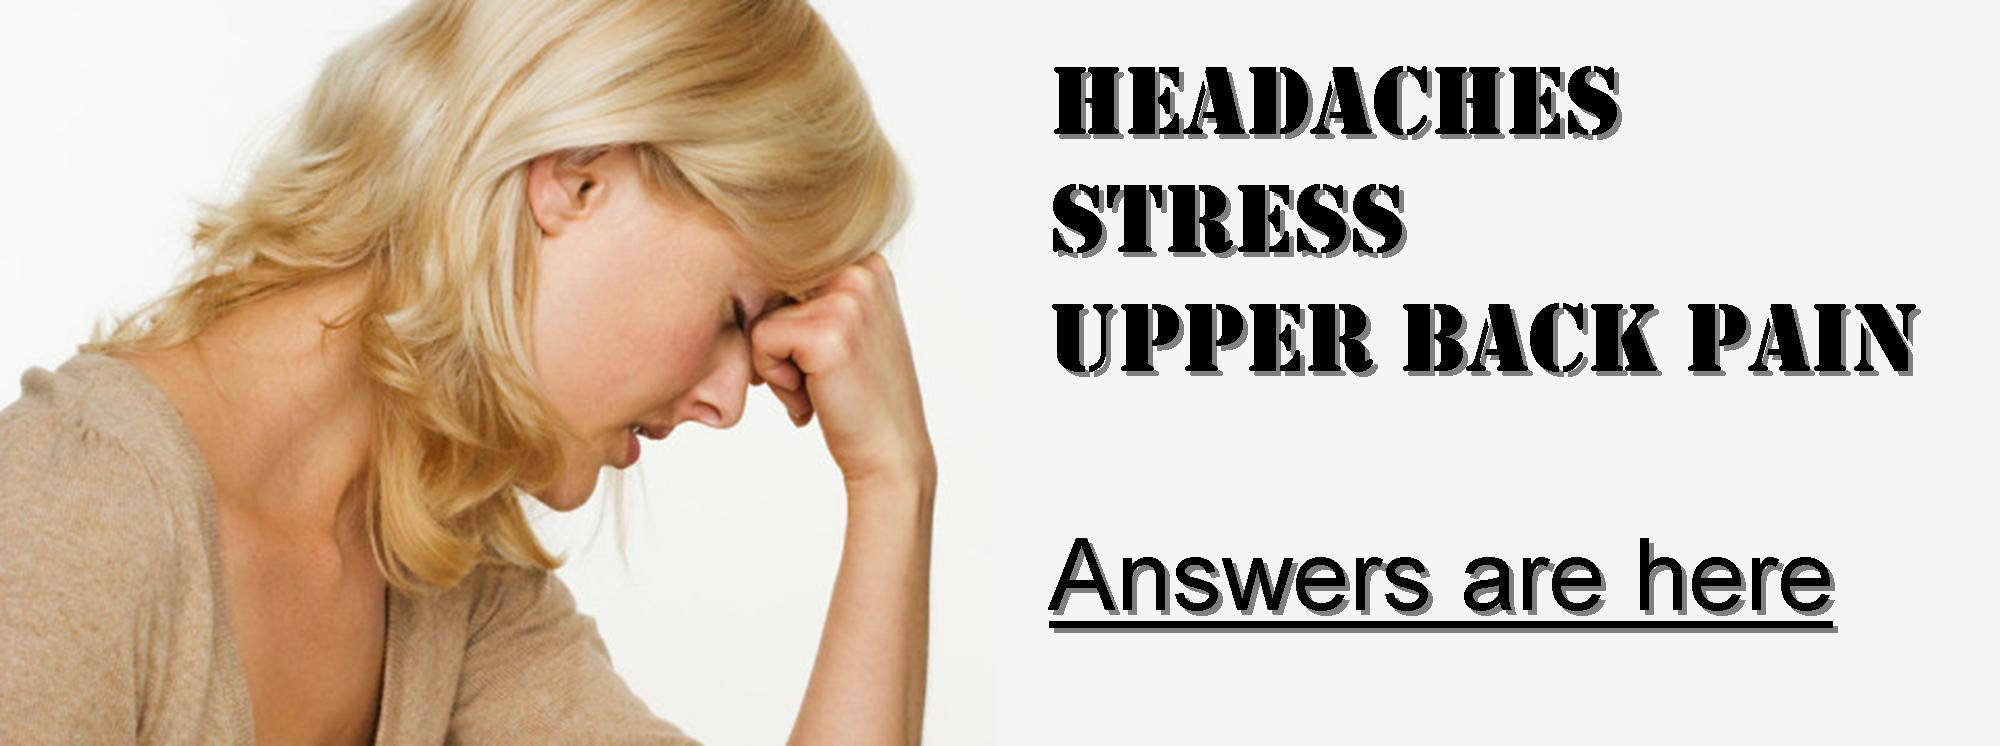 Headaches and Chiropractic